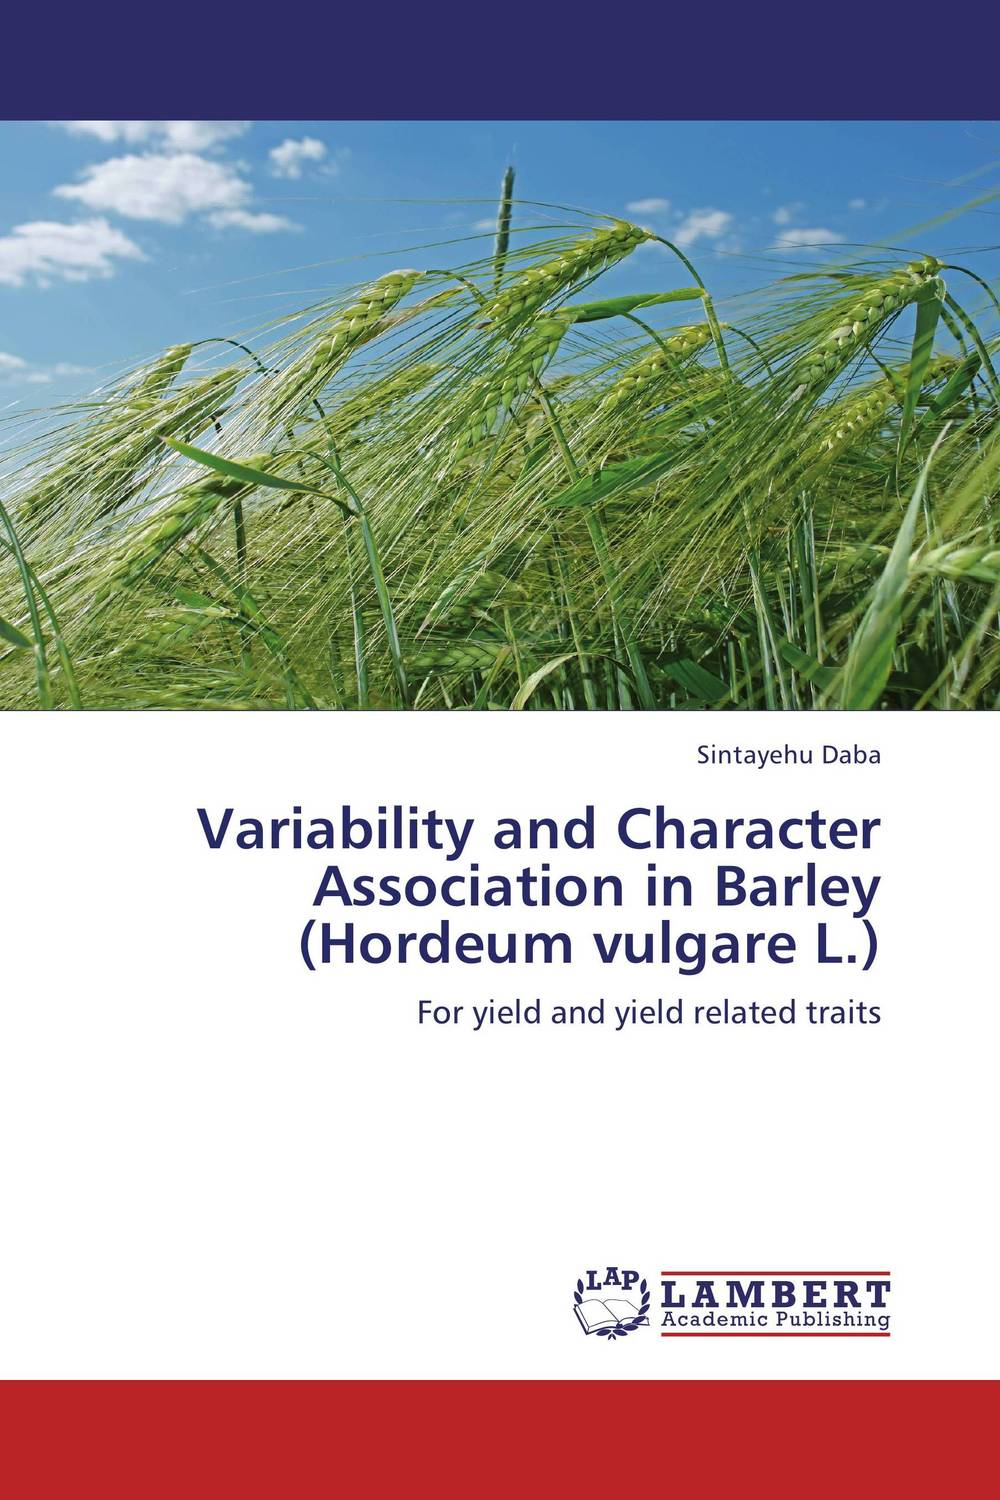 Variability and Character Association in Barley (Hordeum vulgare L.) against the grain